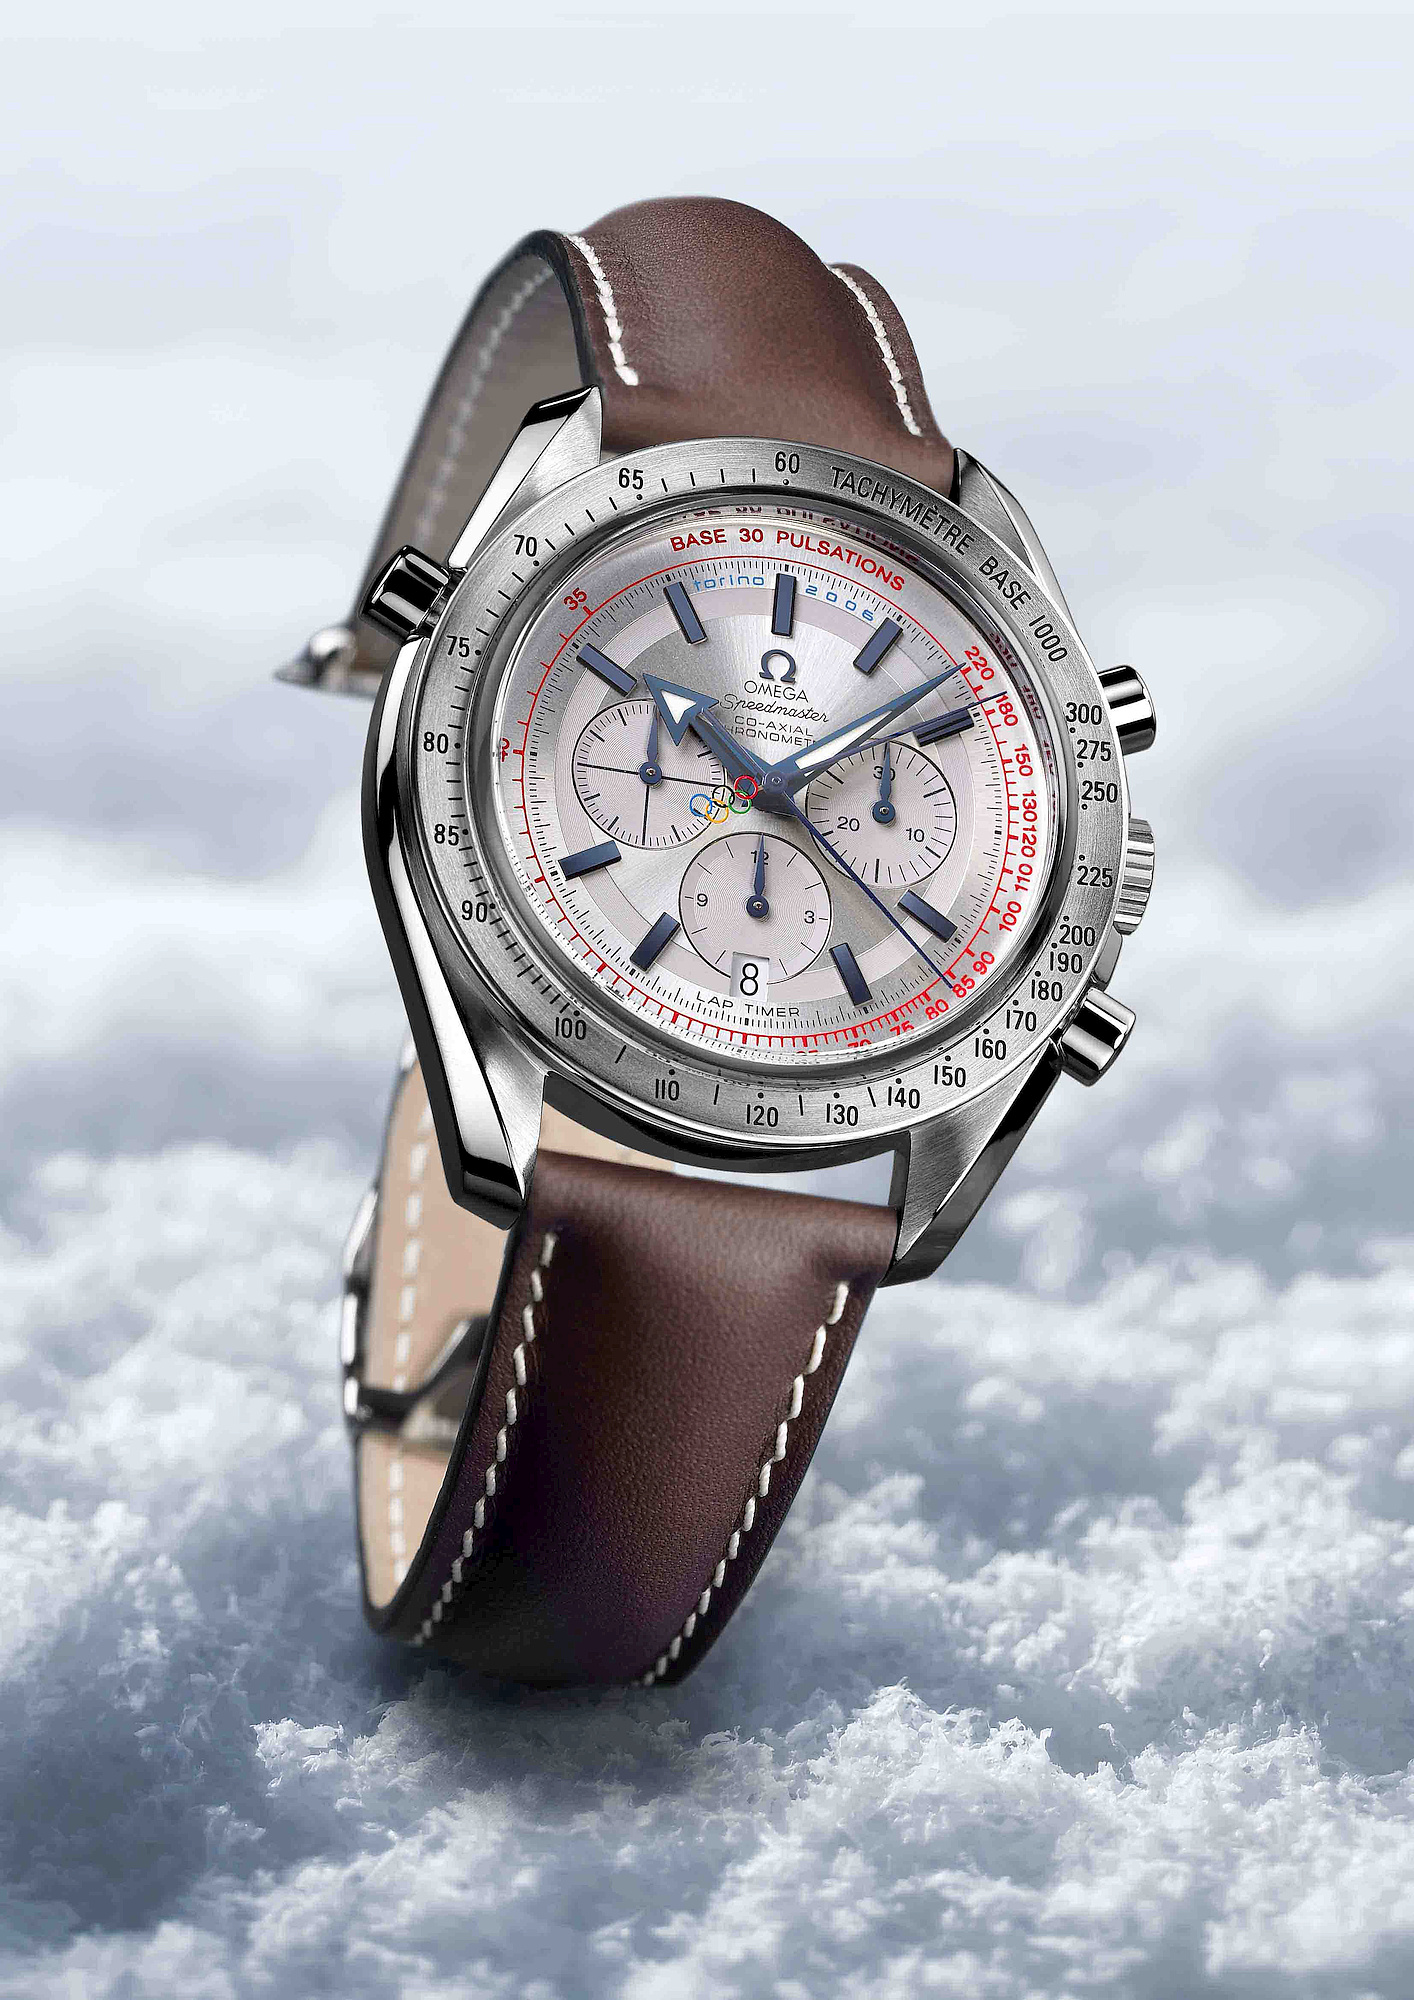 0d3eb423c4b Press Release - Omega Torino Olympic 2006 Collection - SpeedyWatches